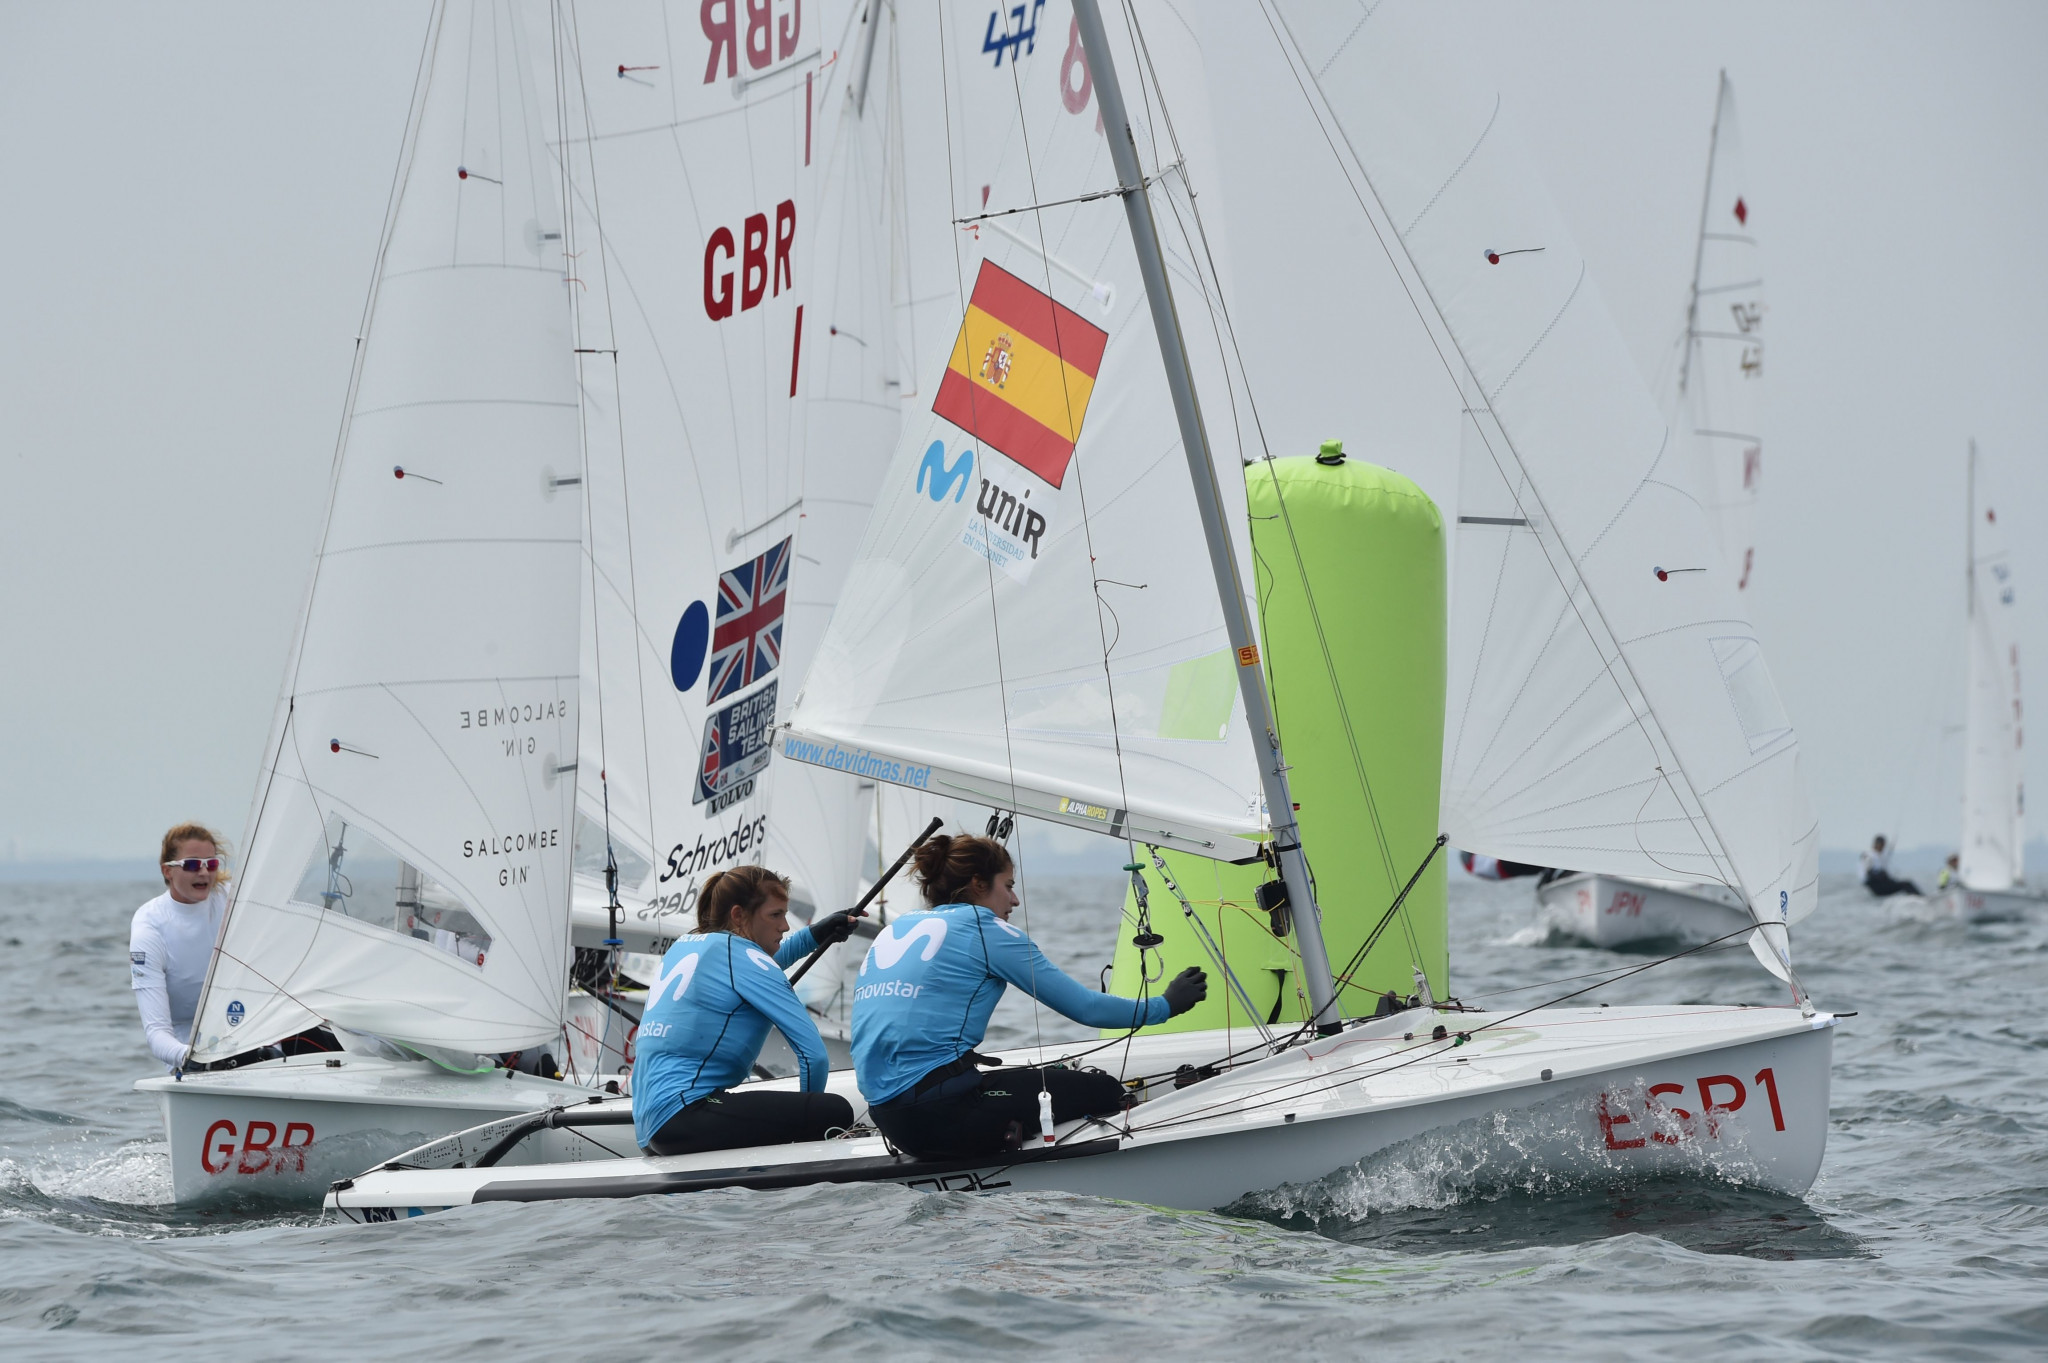 Mas and Cantero take lead of women's contest at 470 World Championships